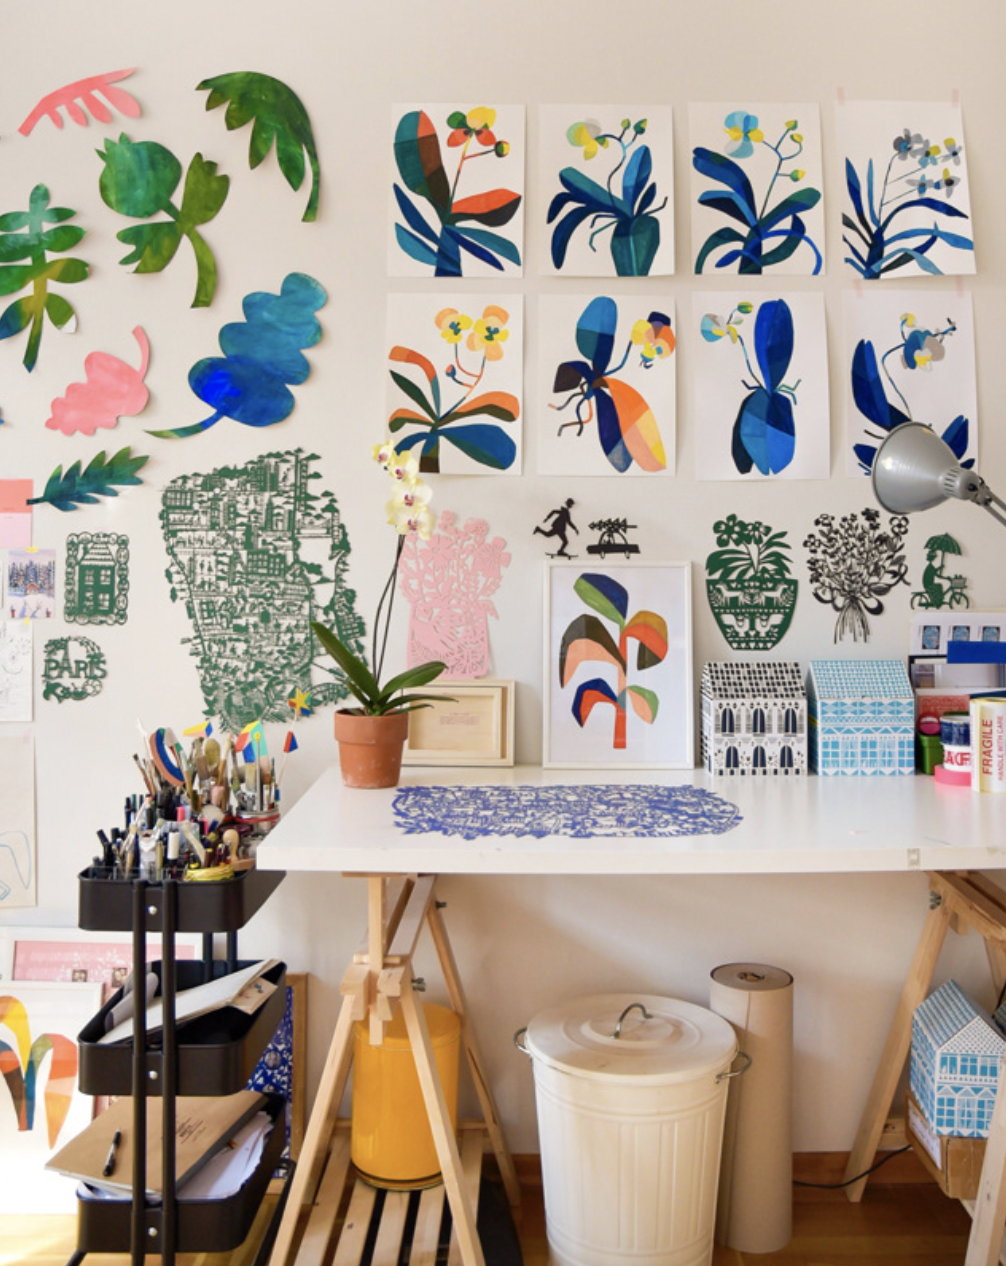 French papercut artist Julie Marabelle's art studio